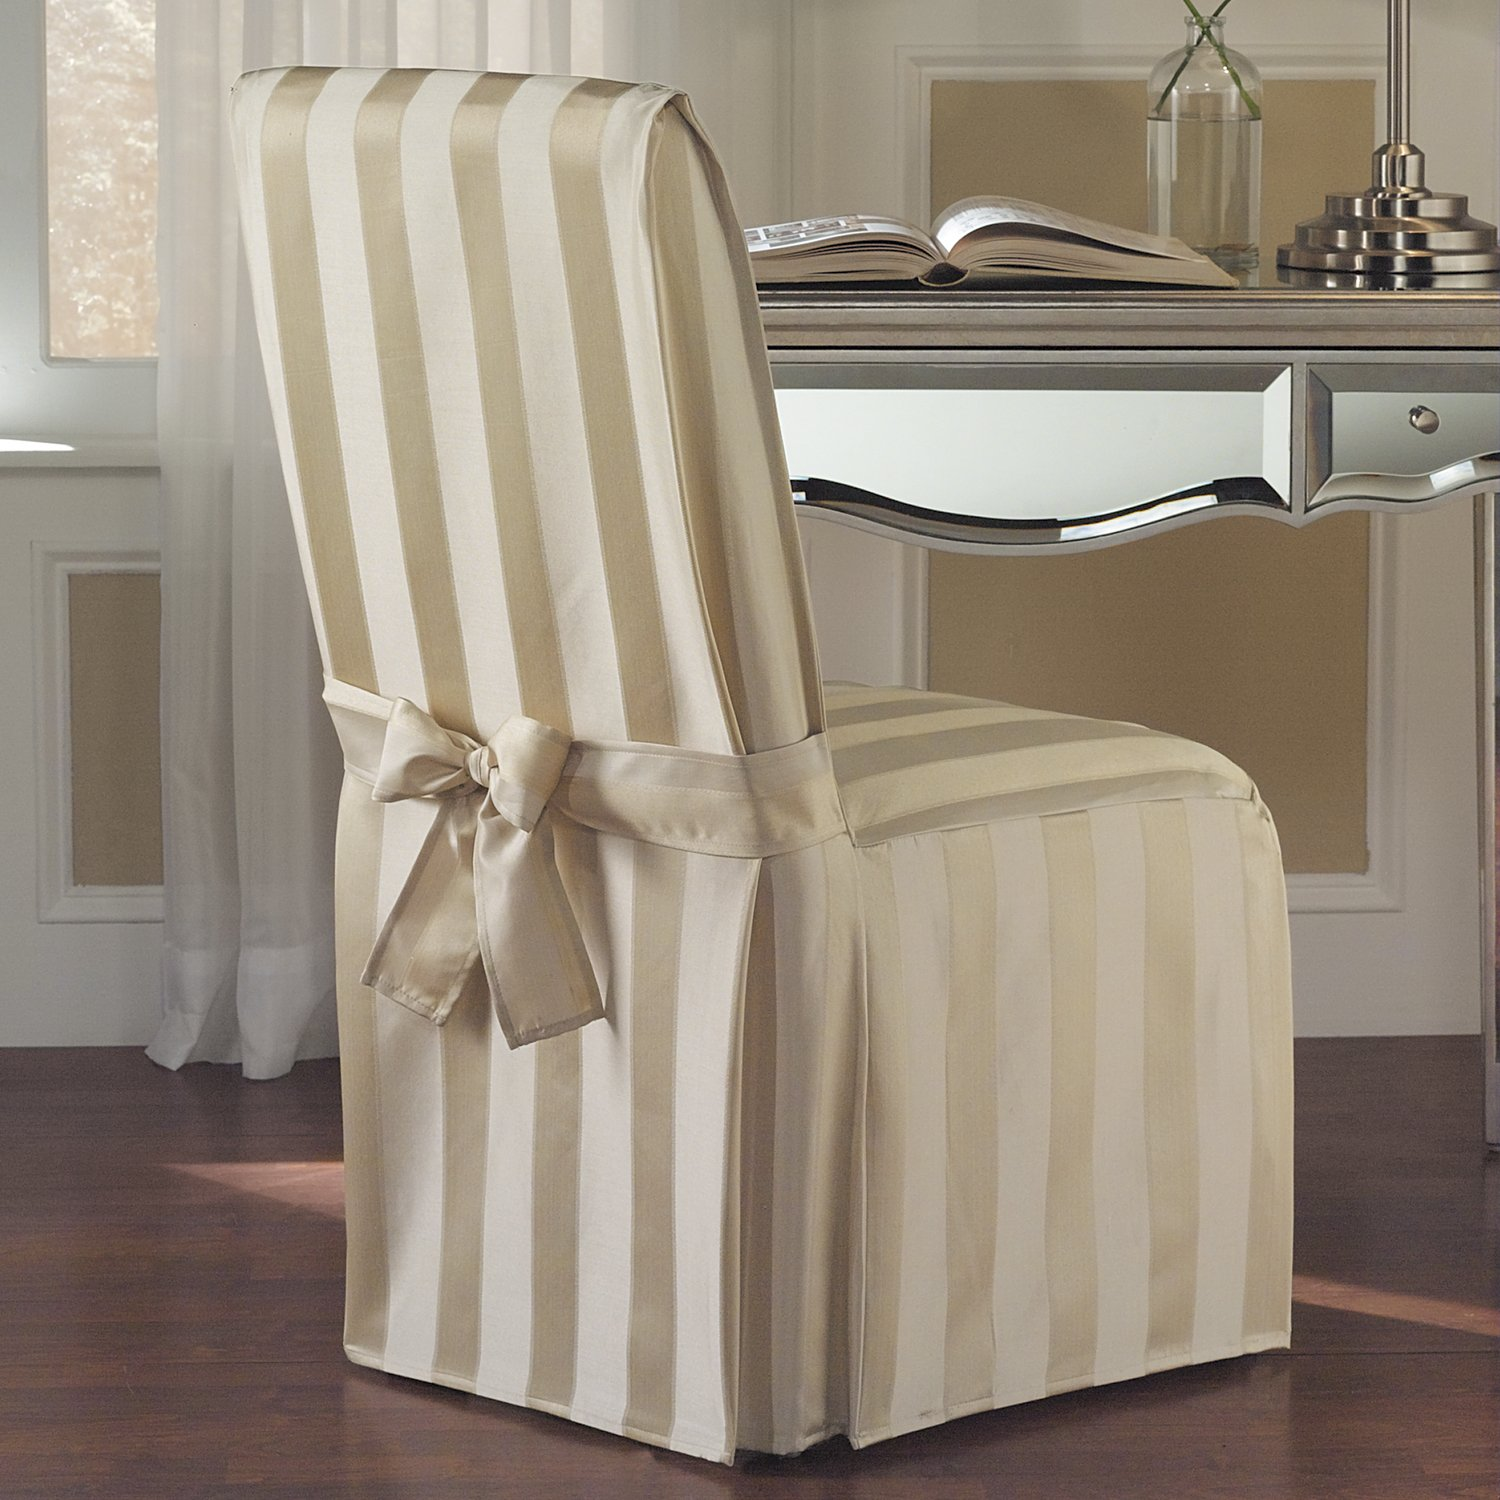 United Curtain Madison Dining Room Chair Cover, 19 by 18 by 39-Inch, Natural